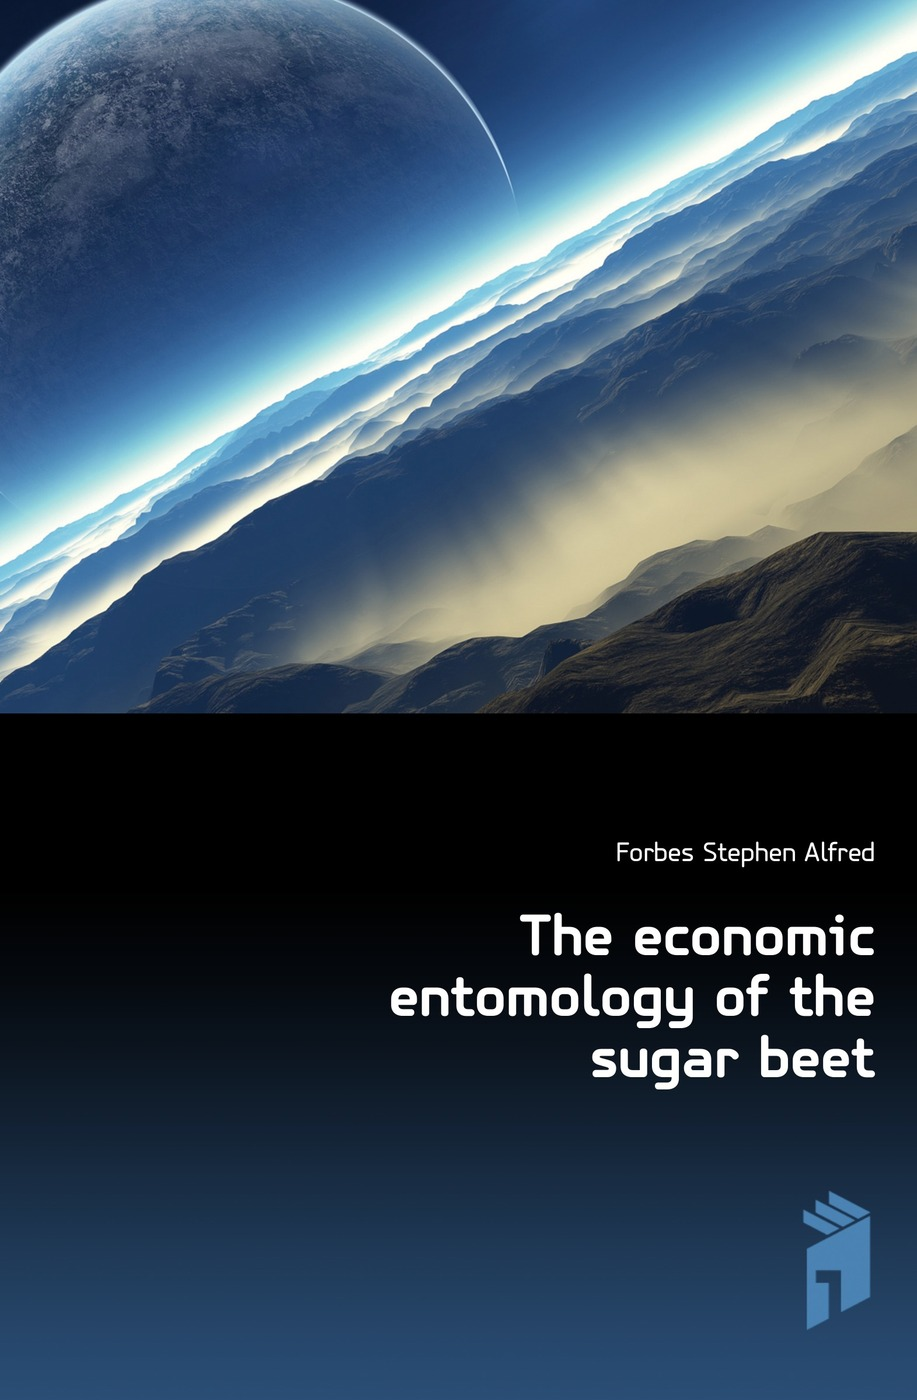 Forbes Stephen Alfred The economic entomology of the sugar beet